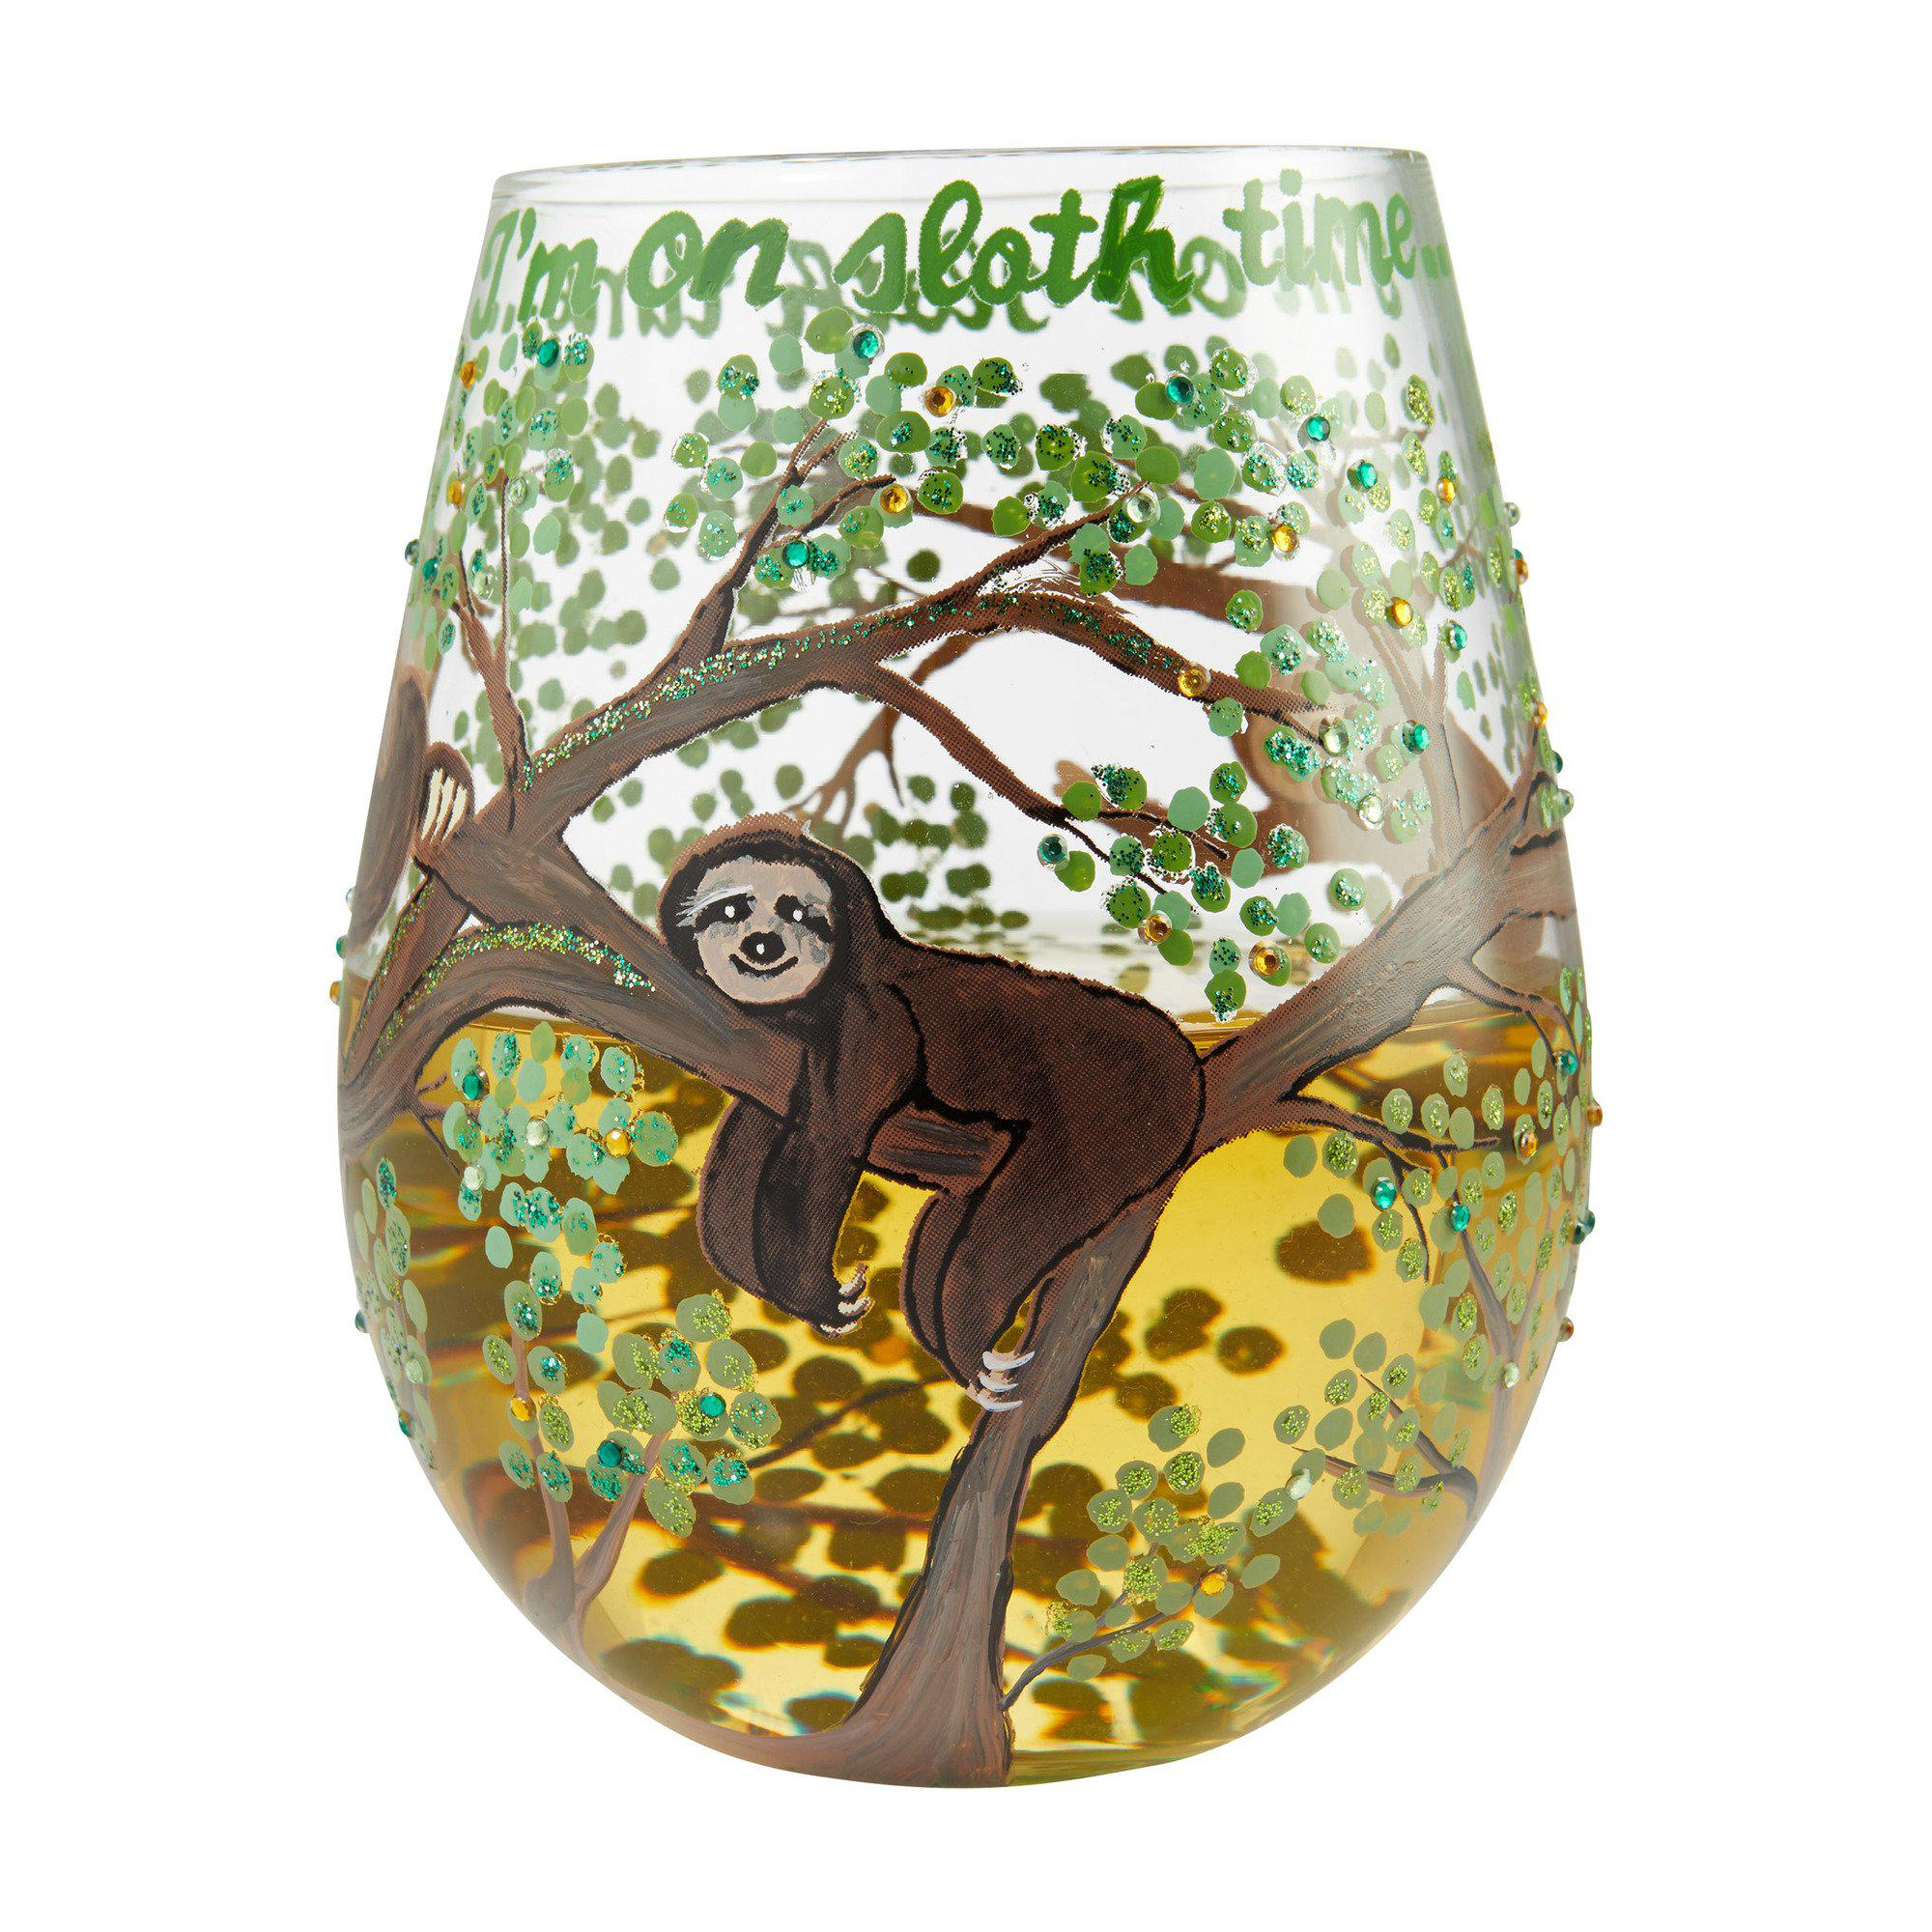 Sloth Time Stemless Wine Glass by Lolita®-Stemless Wine Glass-Designs by Lolita® (Enesco)-Top Notch Gift Shop